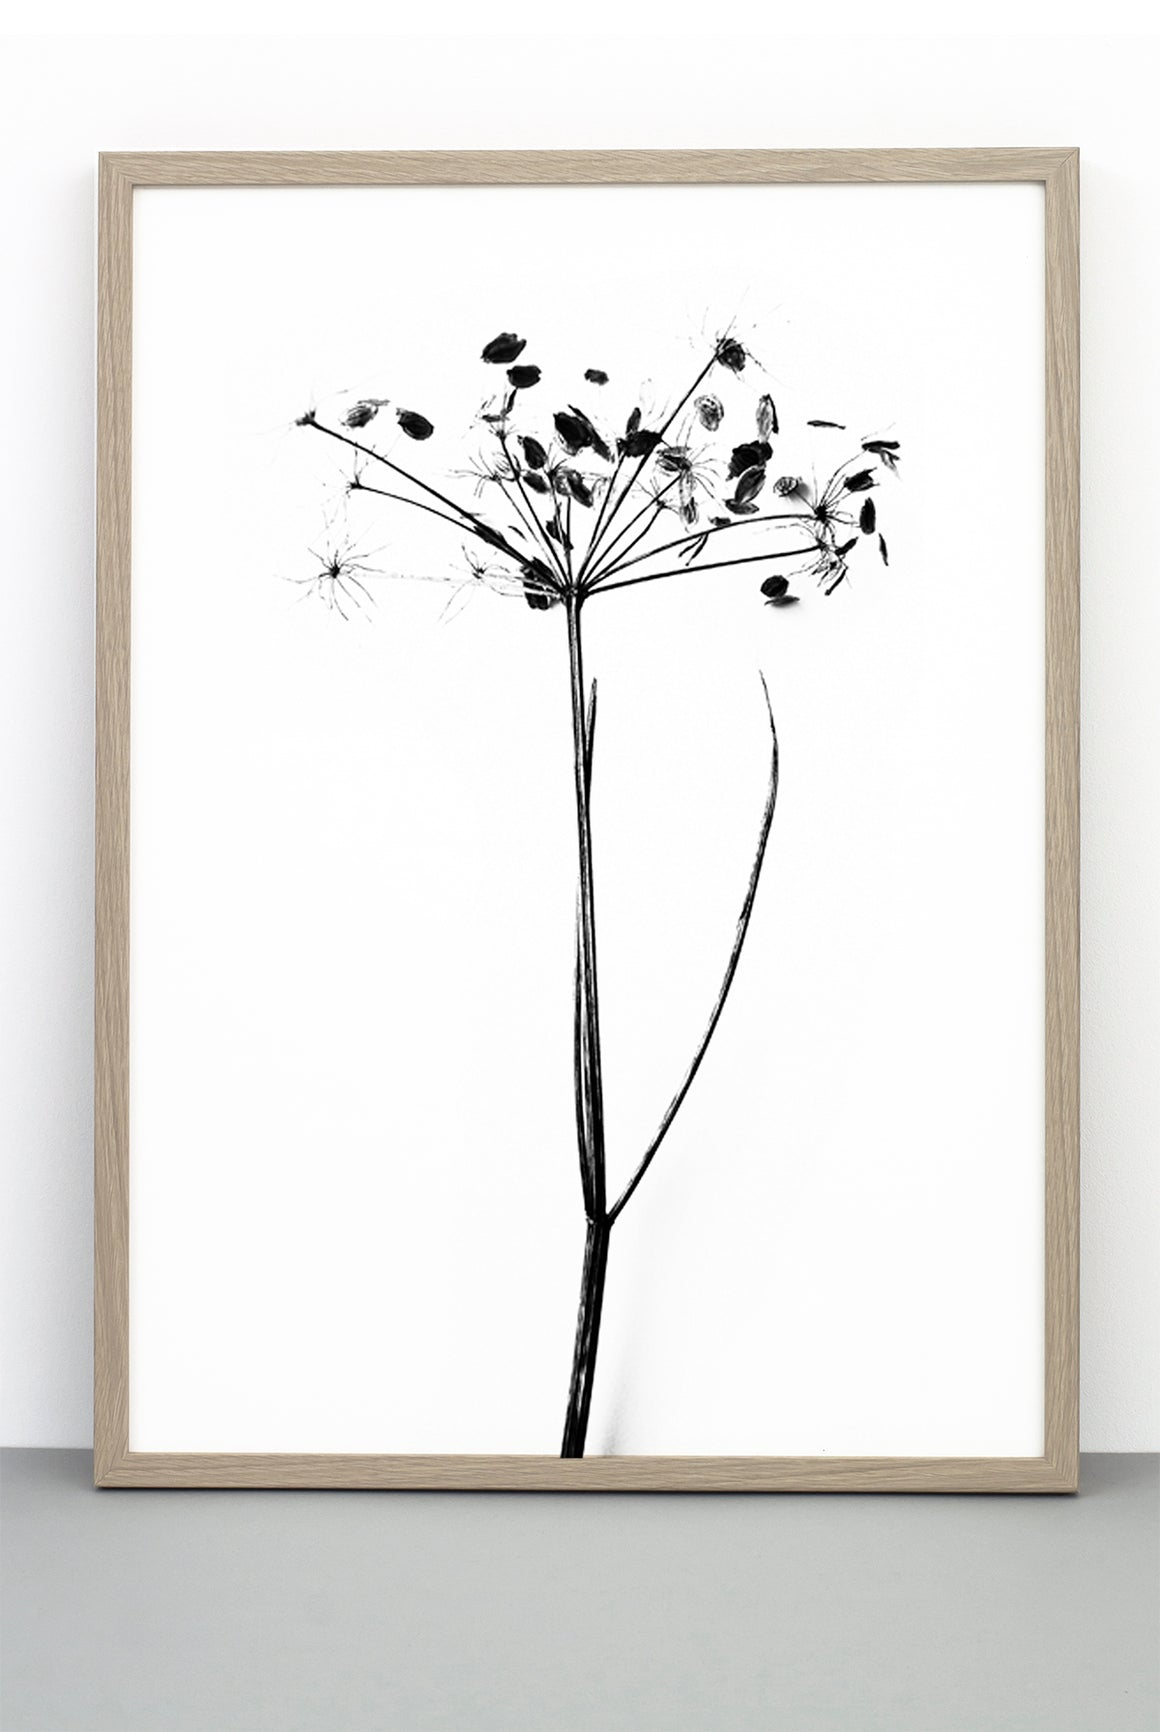 WHOLESALE I DO I DO I DO PRINT,  A BOTANICAL PHOTOGRAPHIC BLACK AND WHITE POSTER